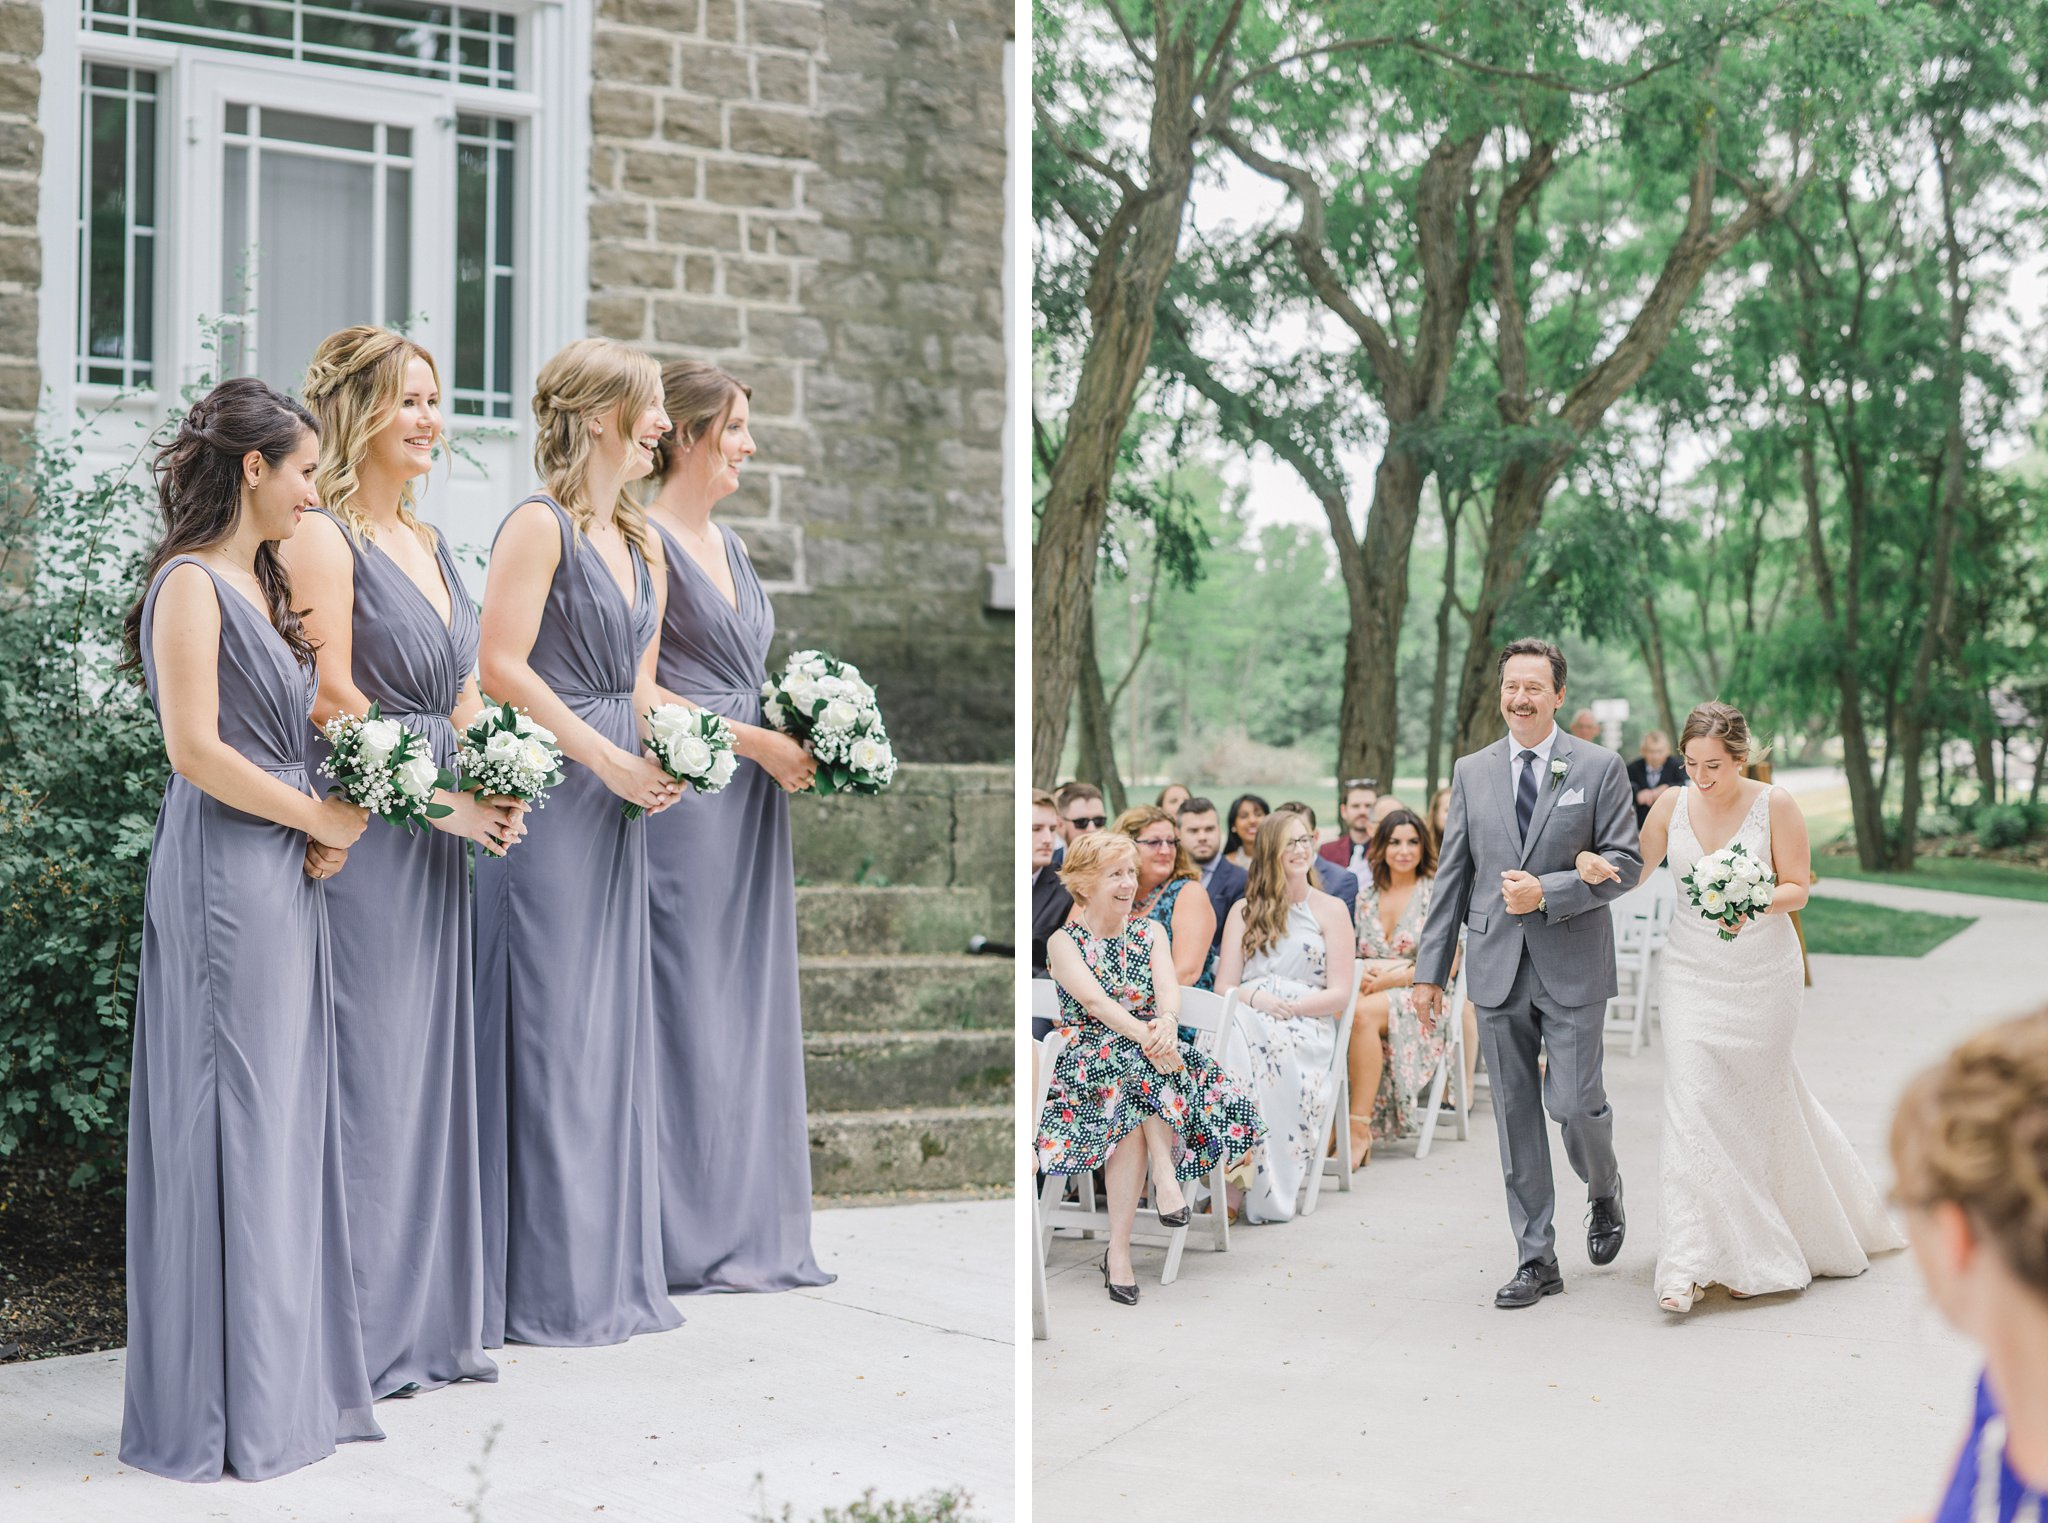 Mauve bridesmaid dresses married at Stonefields, Amy Pinder Photography